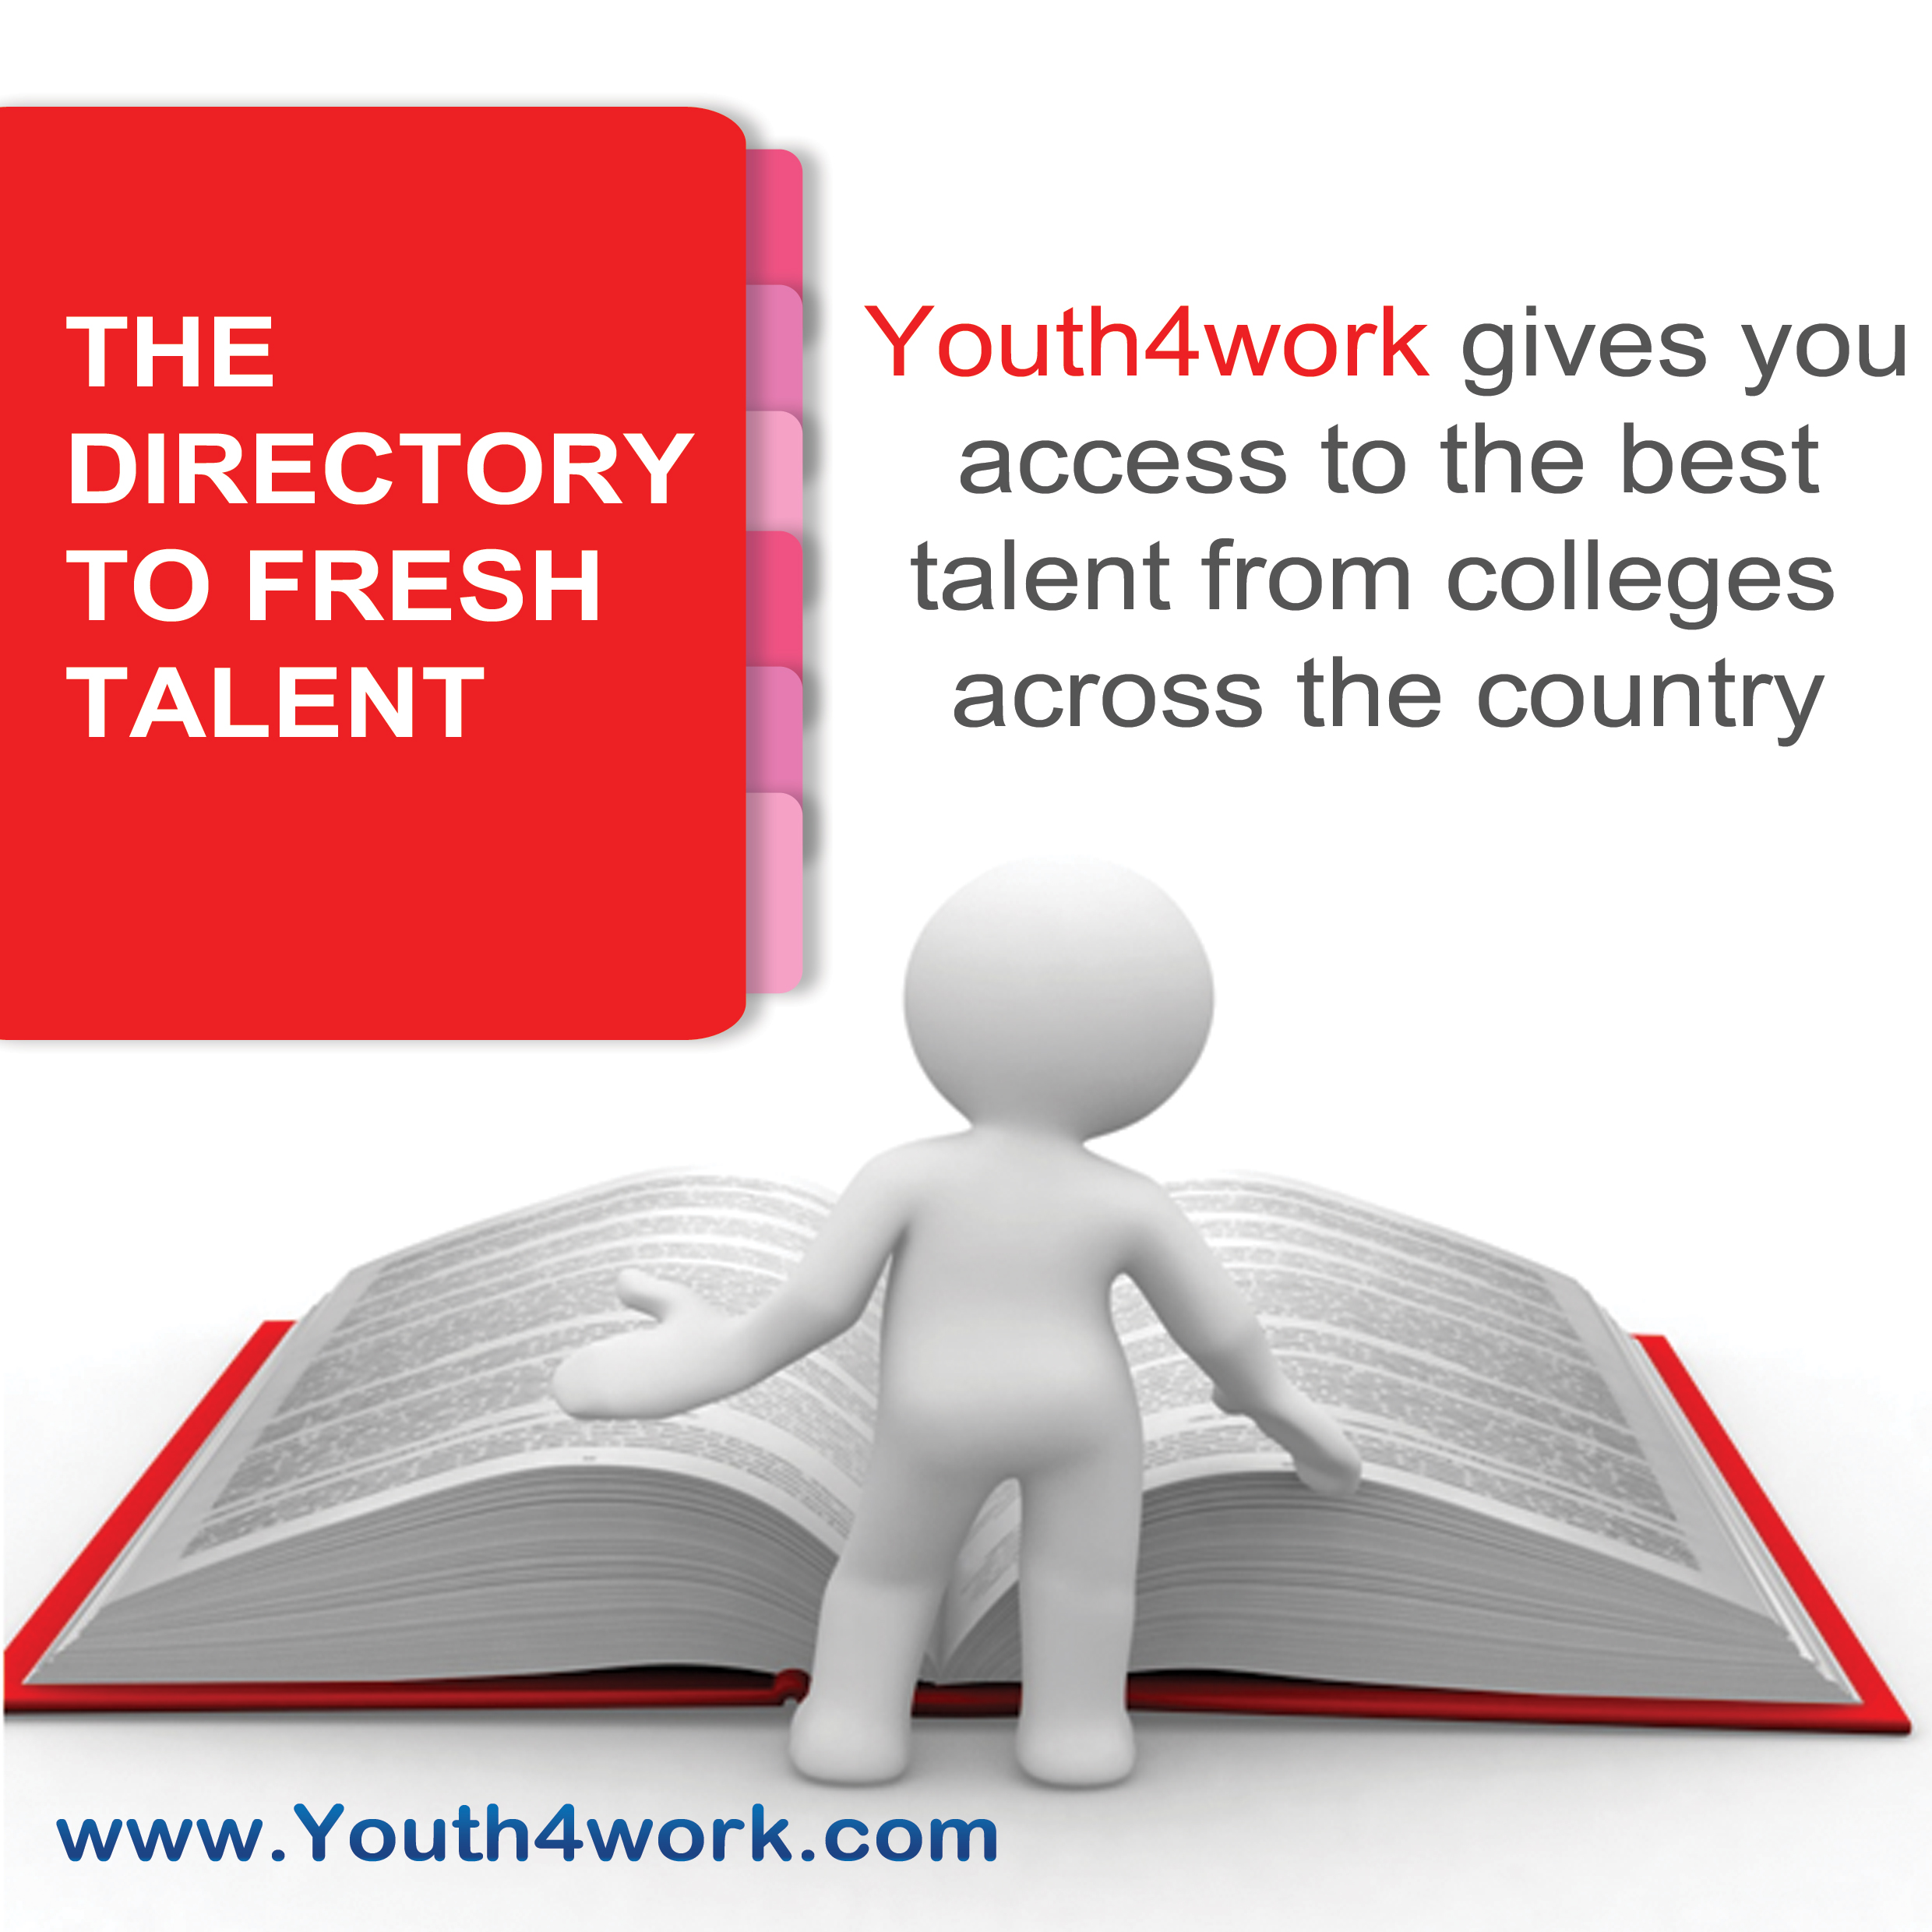 THE DIRECTORY TO FRESH TALENT